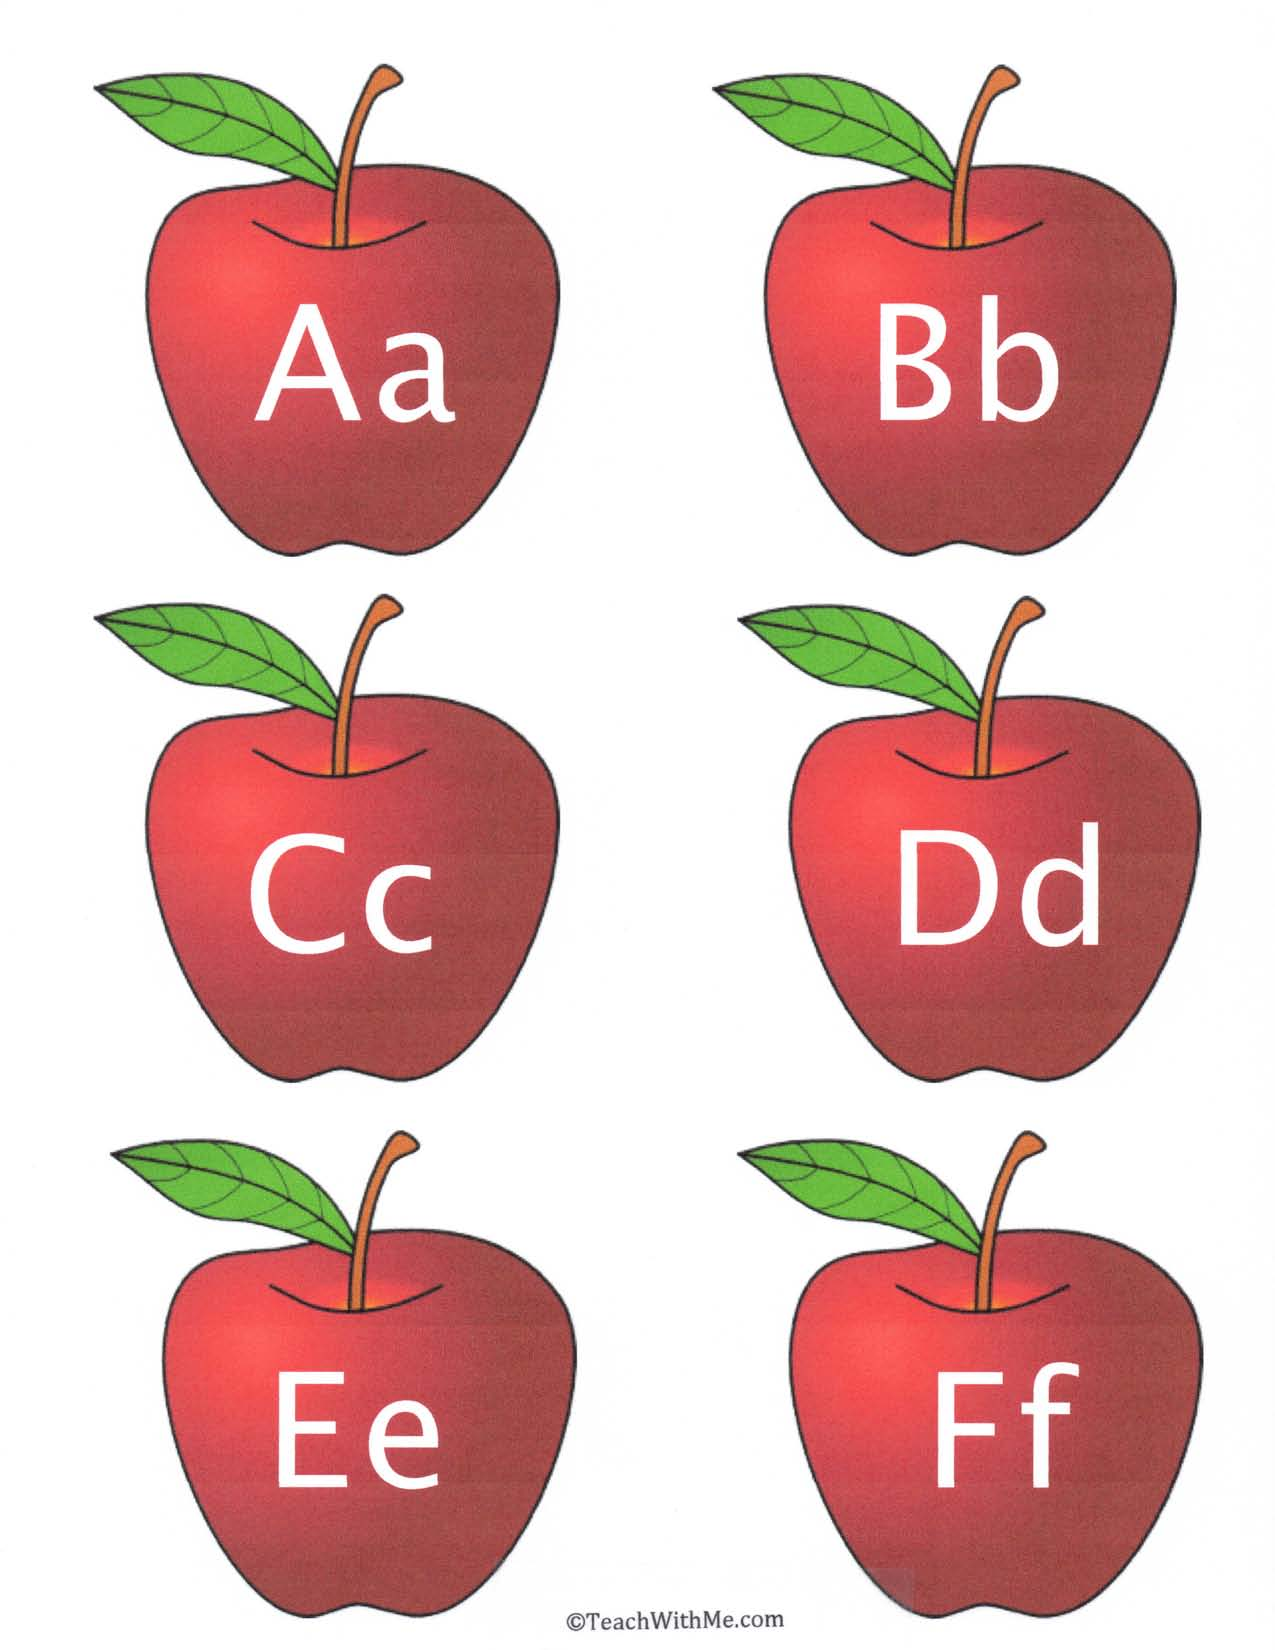 apple games, alphabet games, alphabet worksheets, alphabet cards, apple activities, alphabet cards,